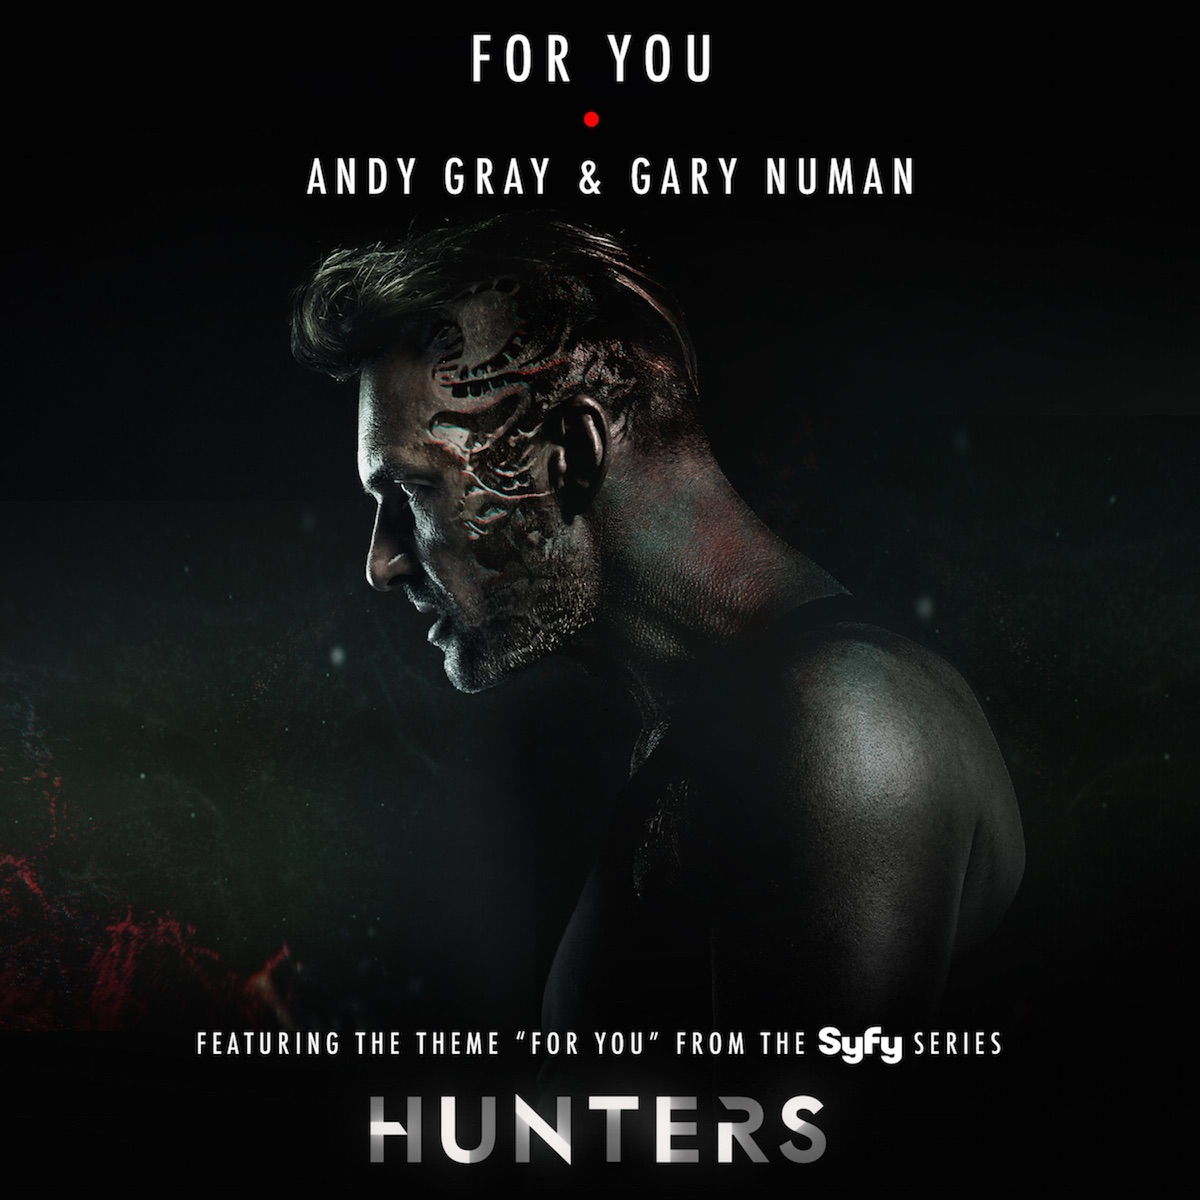 For You - EP Album Cover by Andy Gray & Gary Numan